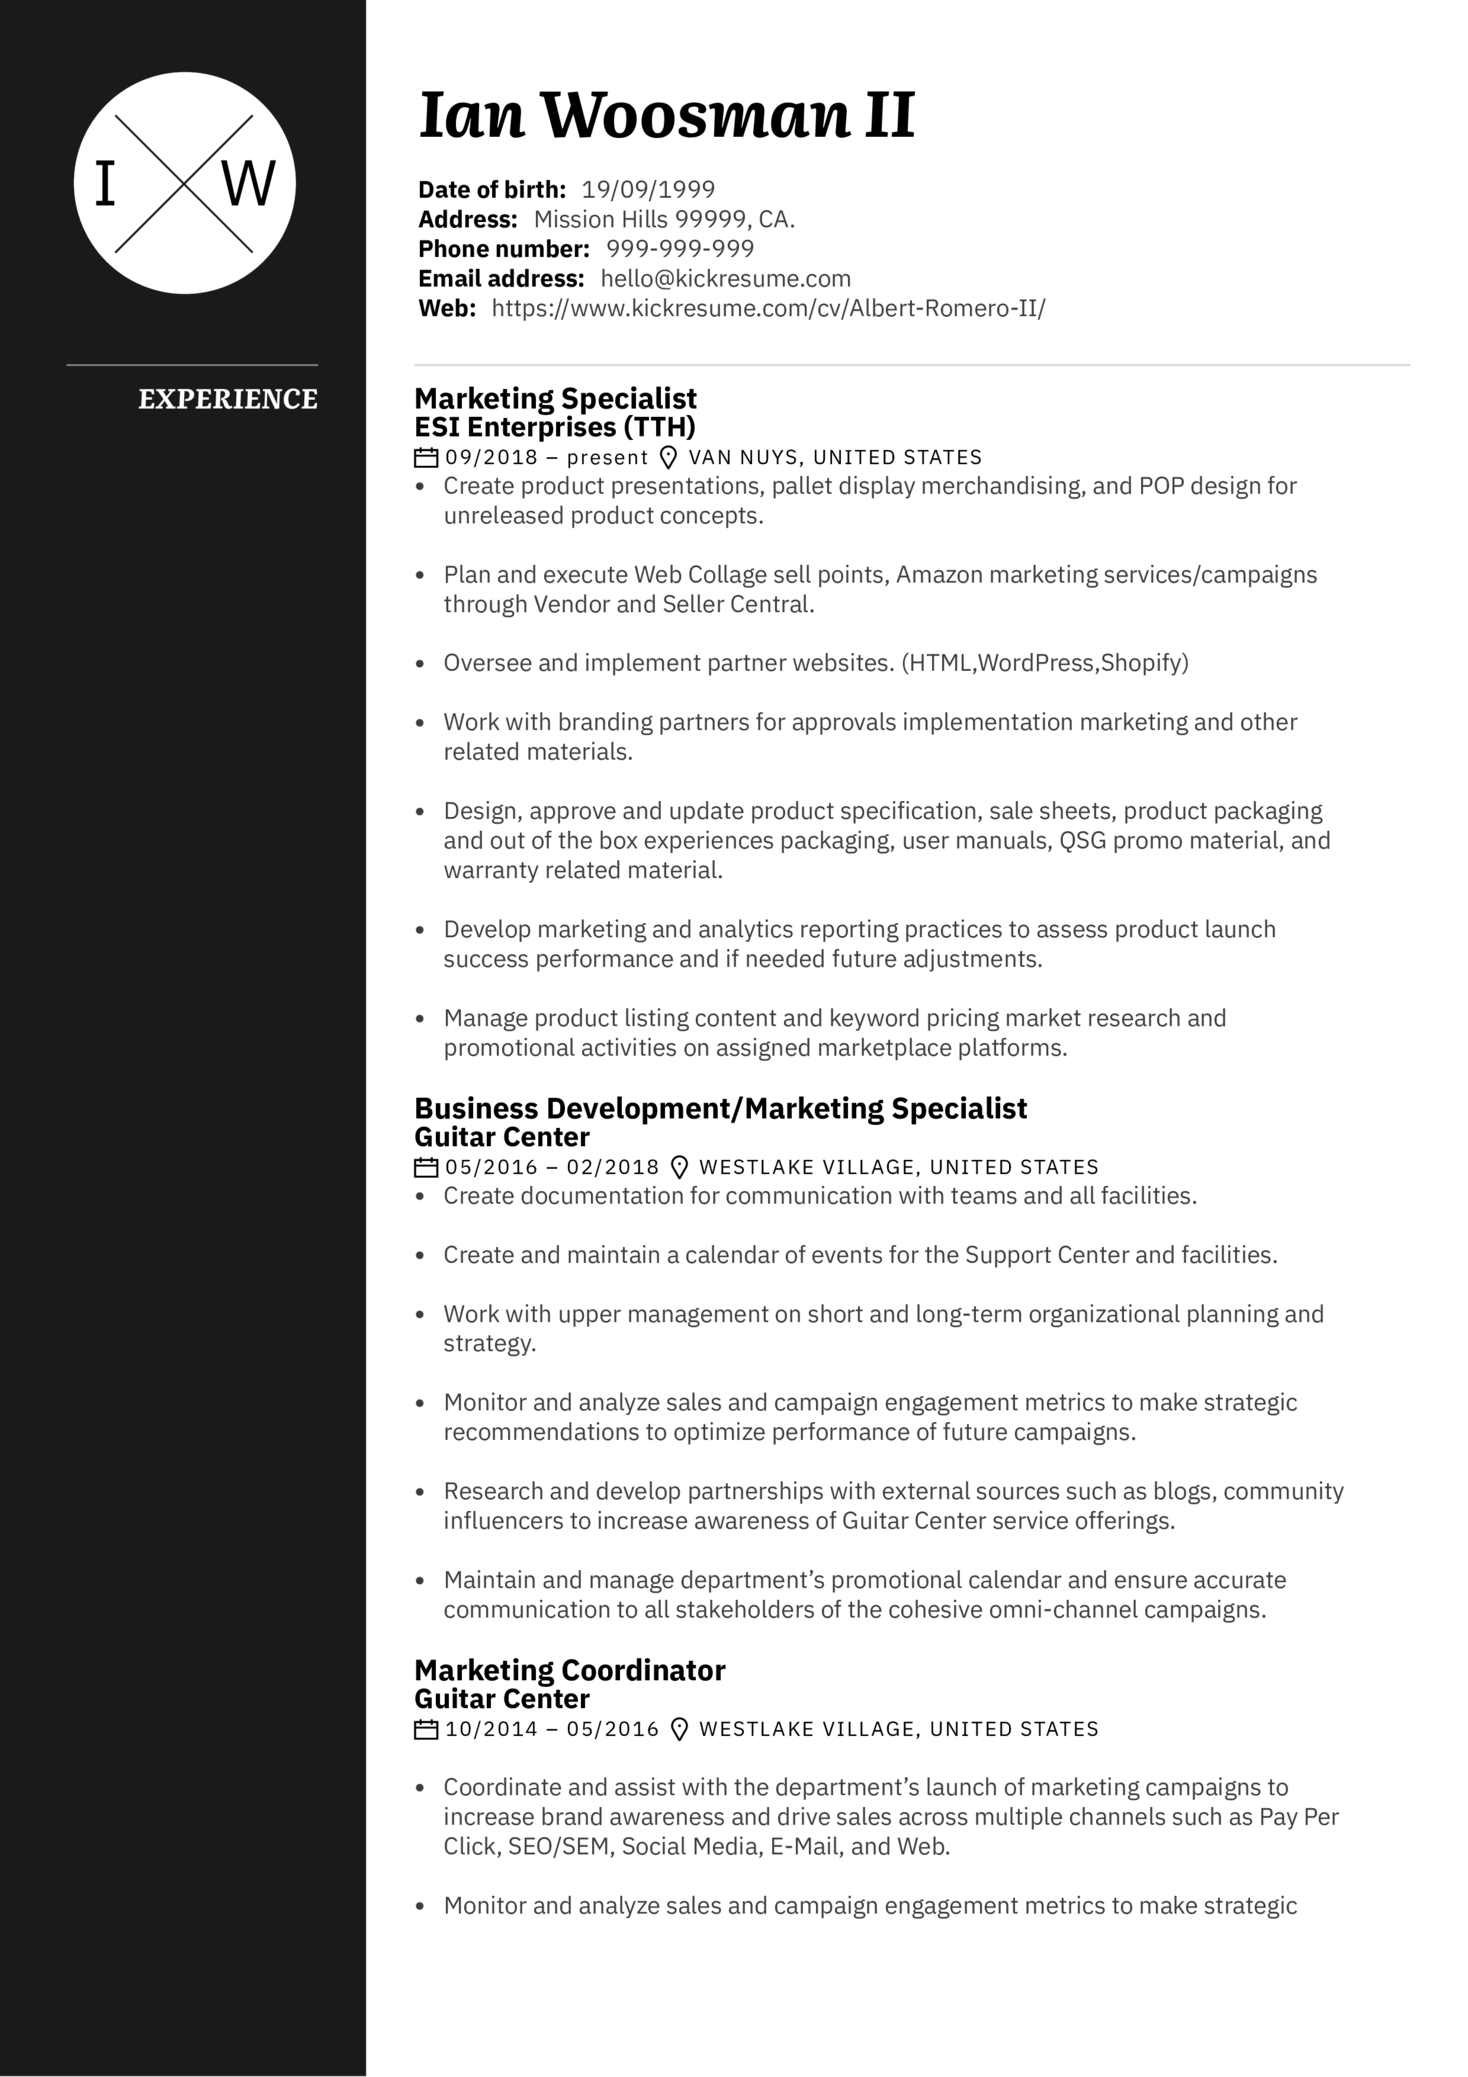 Marketing Specialist Resume Sample (Parte 1)